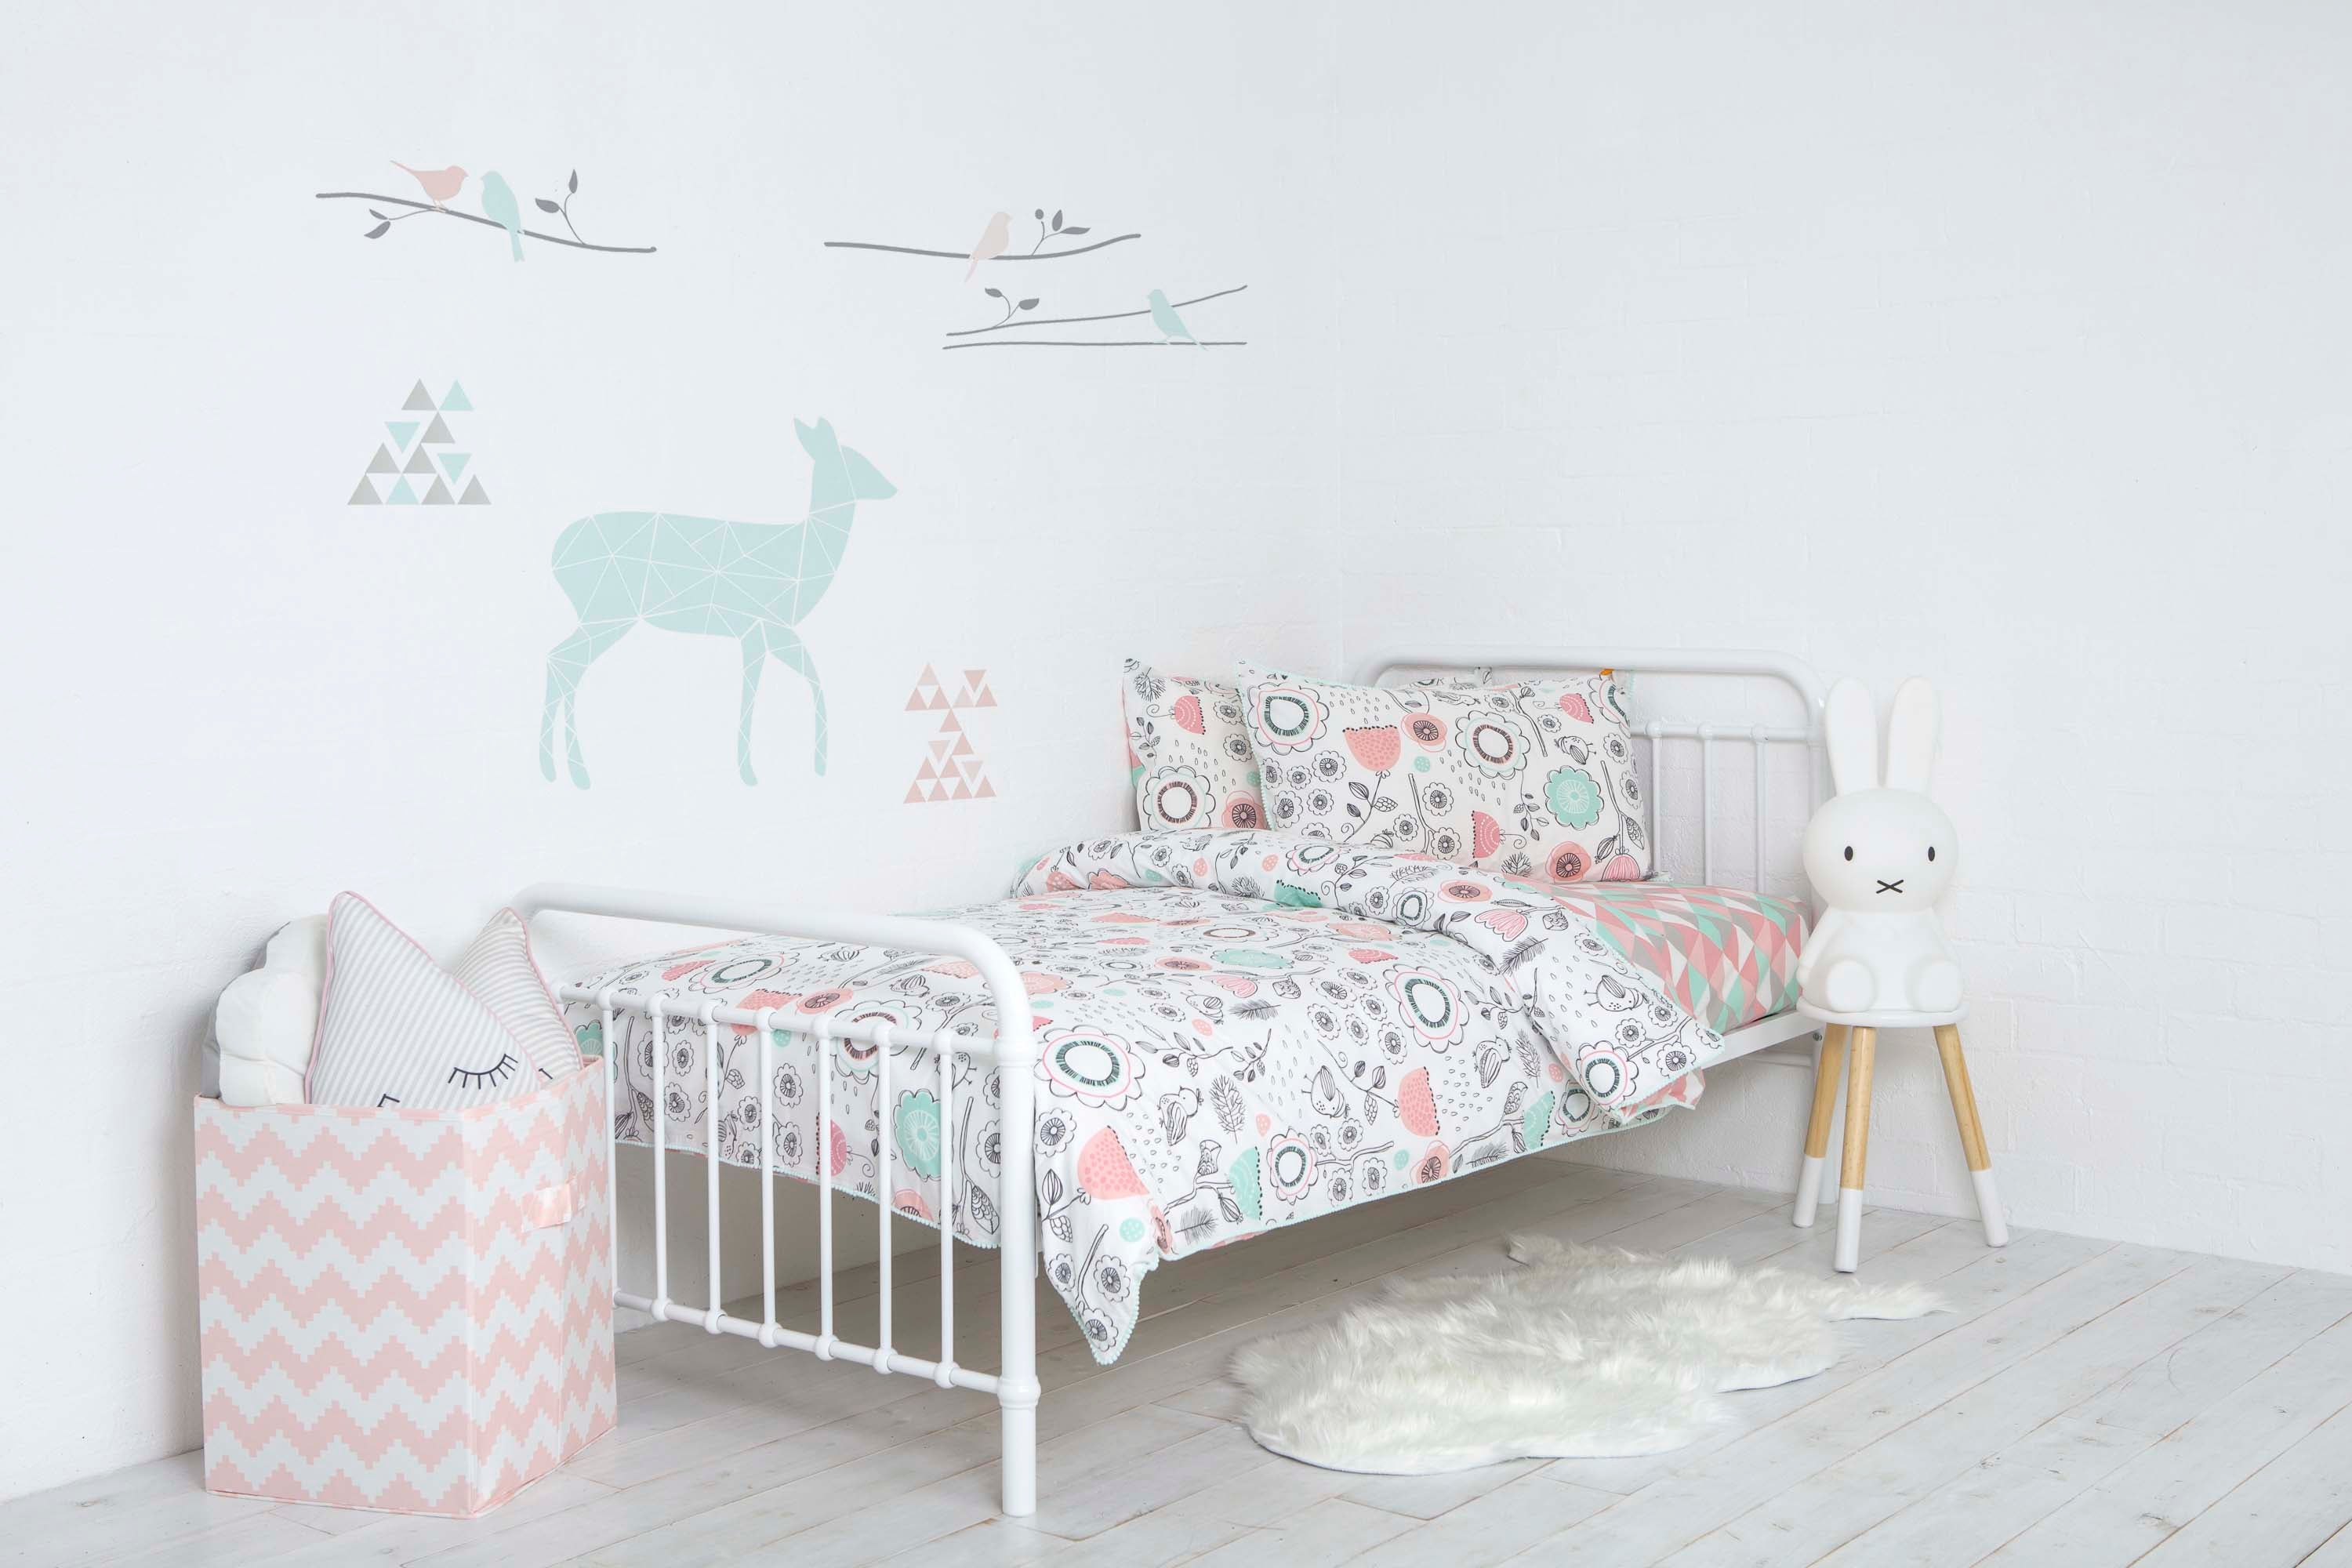 2 Piece Single Bed Fitted Sheet   Sparrow